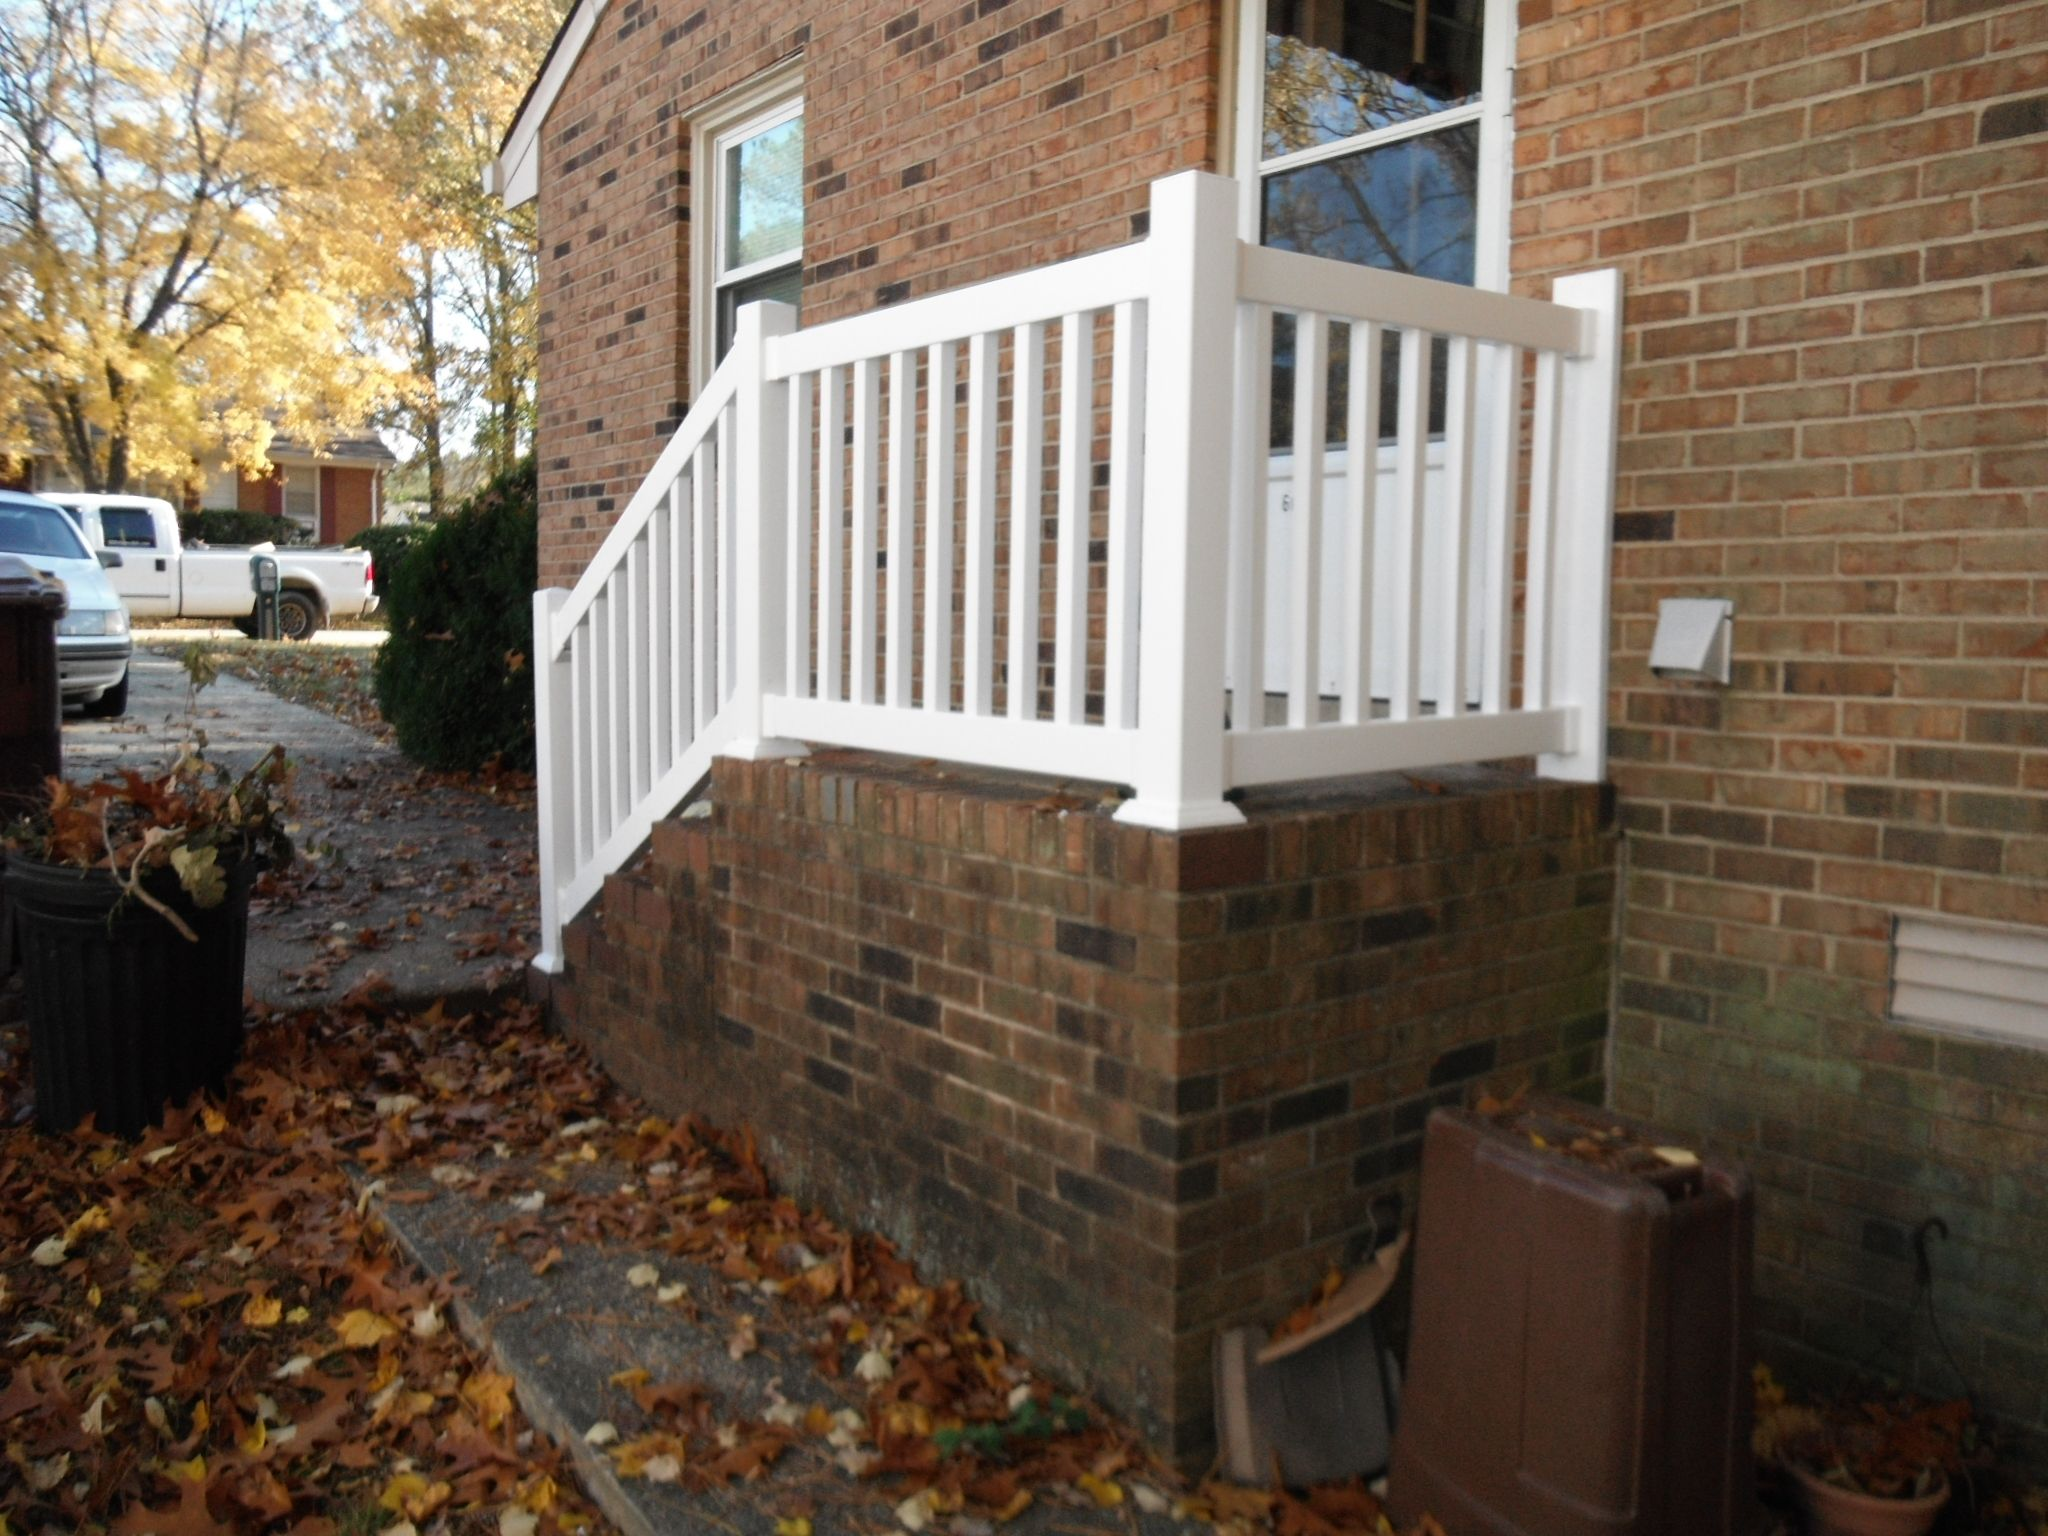 Before And After Photos Of New Vinyl Railings On Side Porch Vinyl Railing Side Porch Concrete Porch